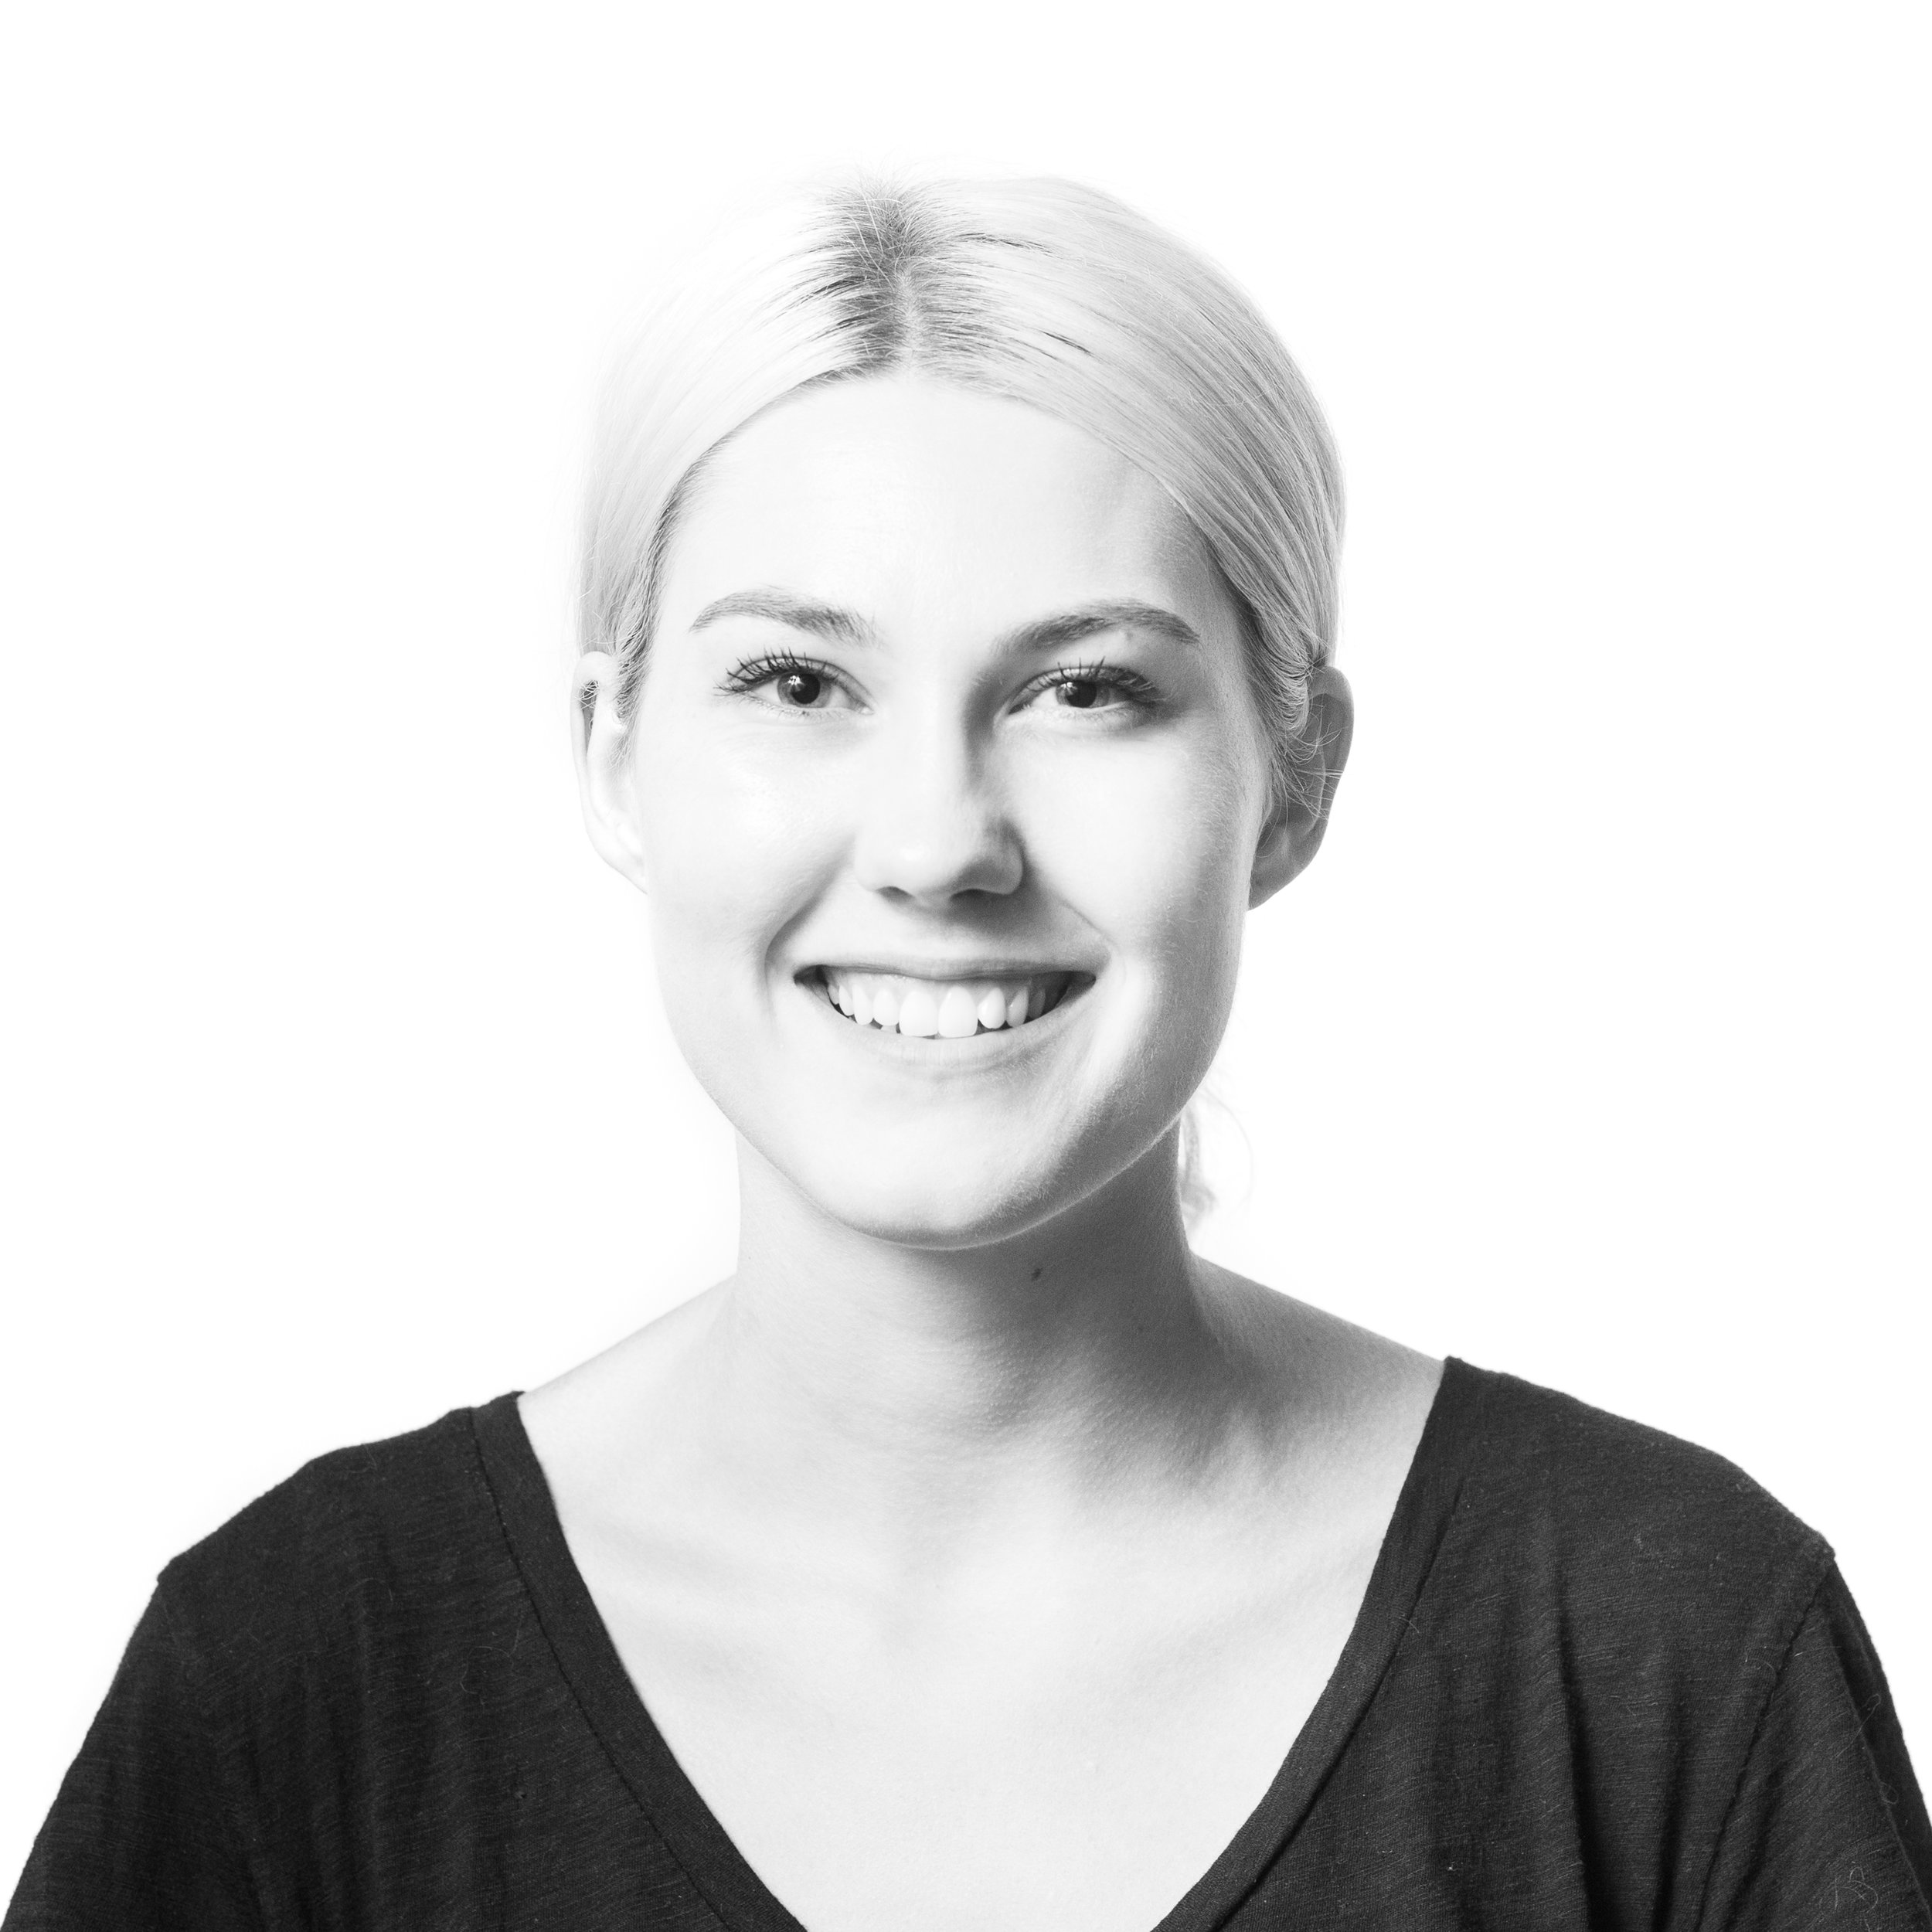 Chriss Sugg  UX Design  Chriss has designed visual identities and user interfaces for a diverse range of New York-based startups spanning retail-tech, entertainment, and fintech. Chriss graduated from Boston University with a degree in Philosophy.   LinkedIn